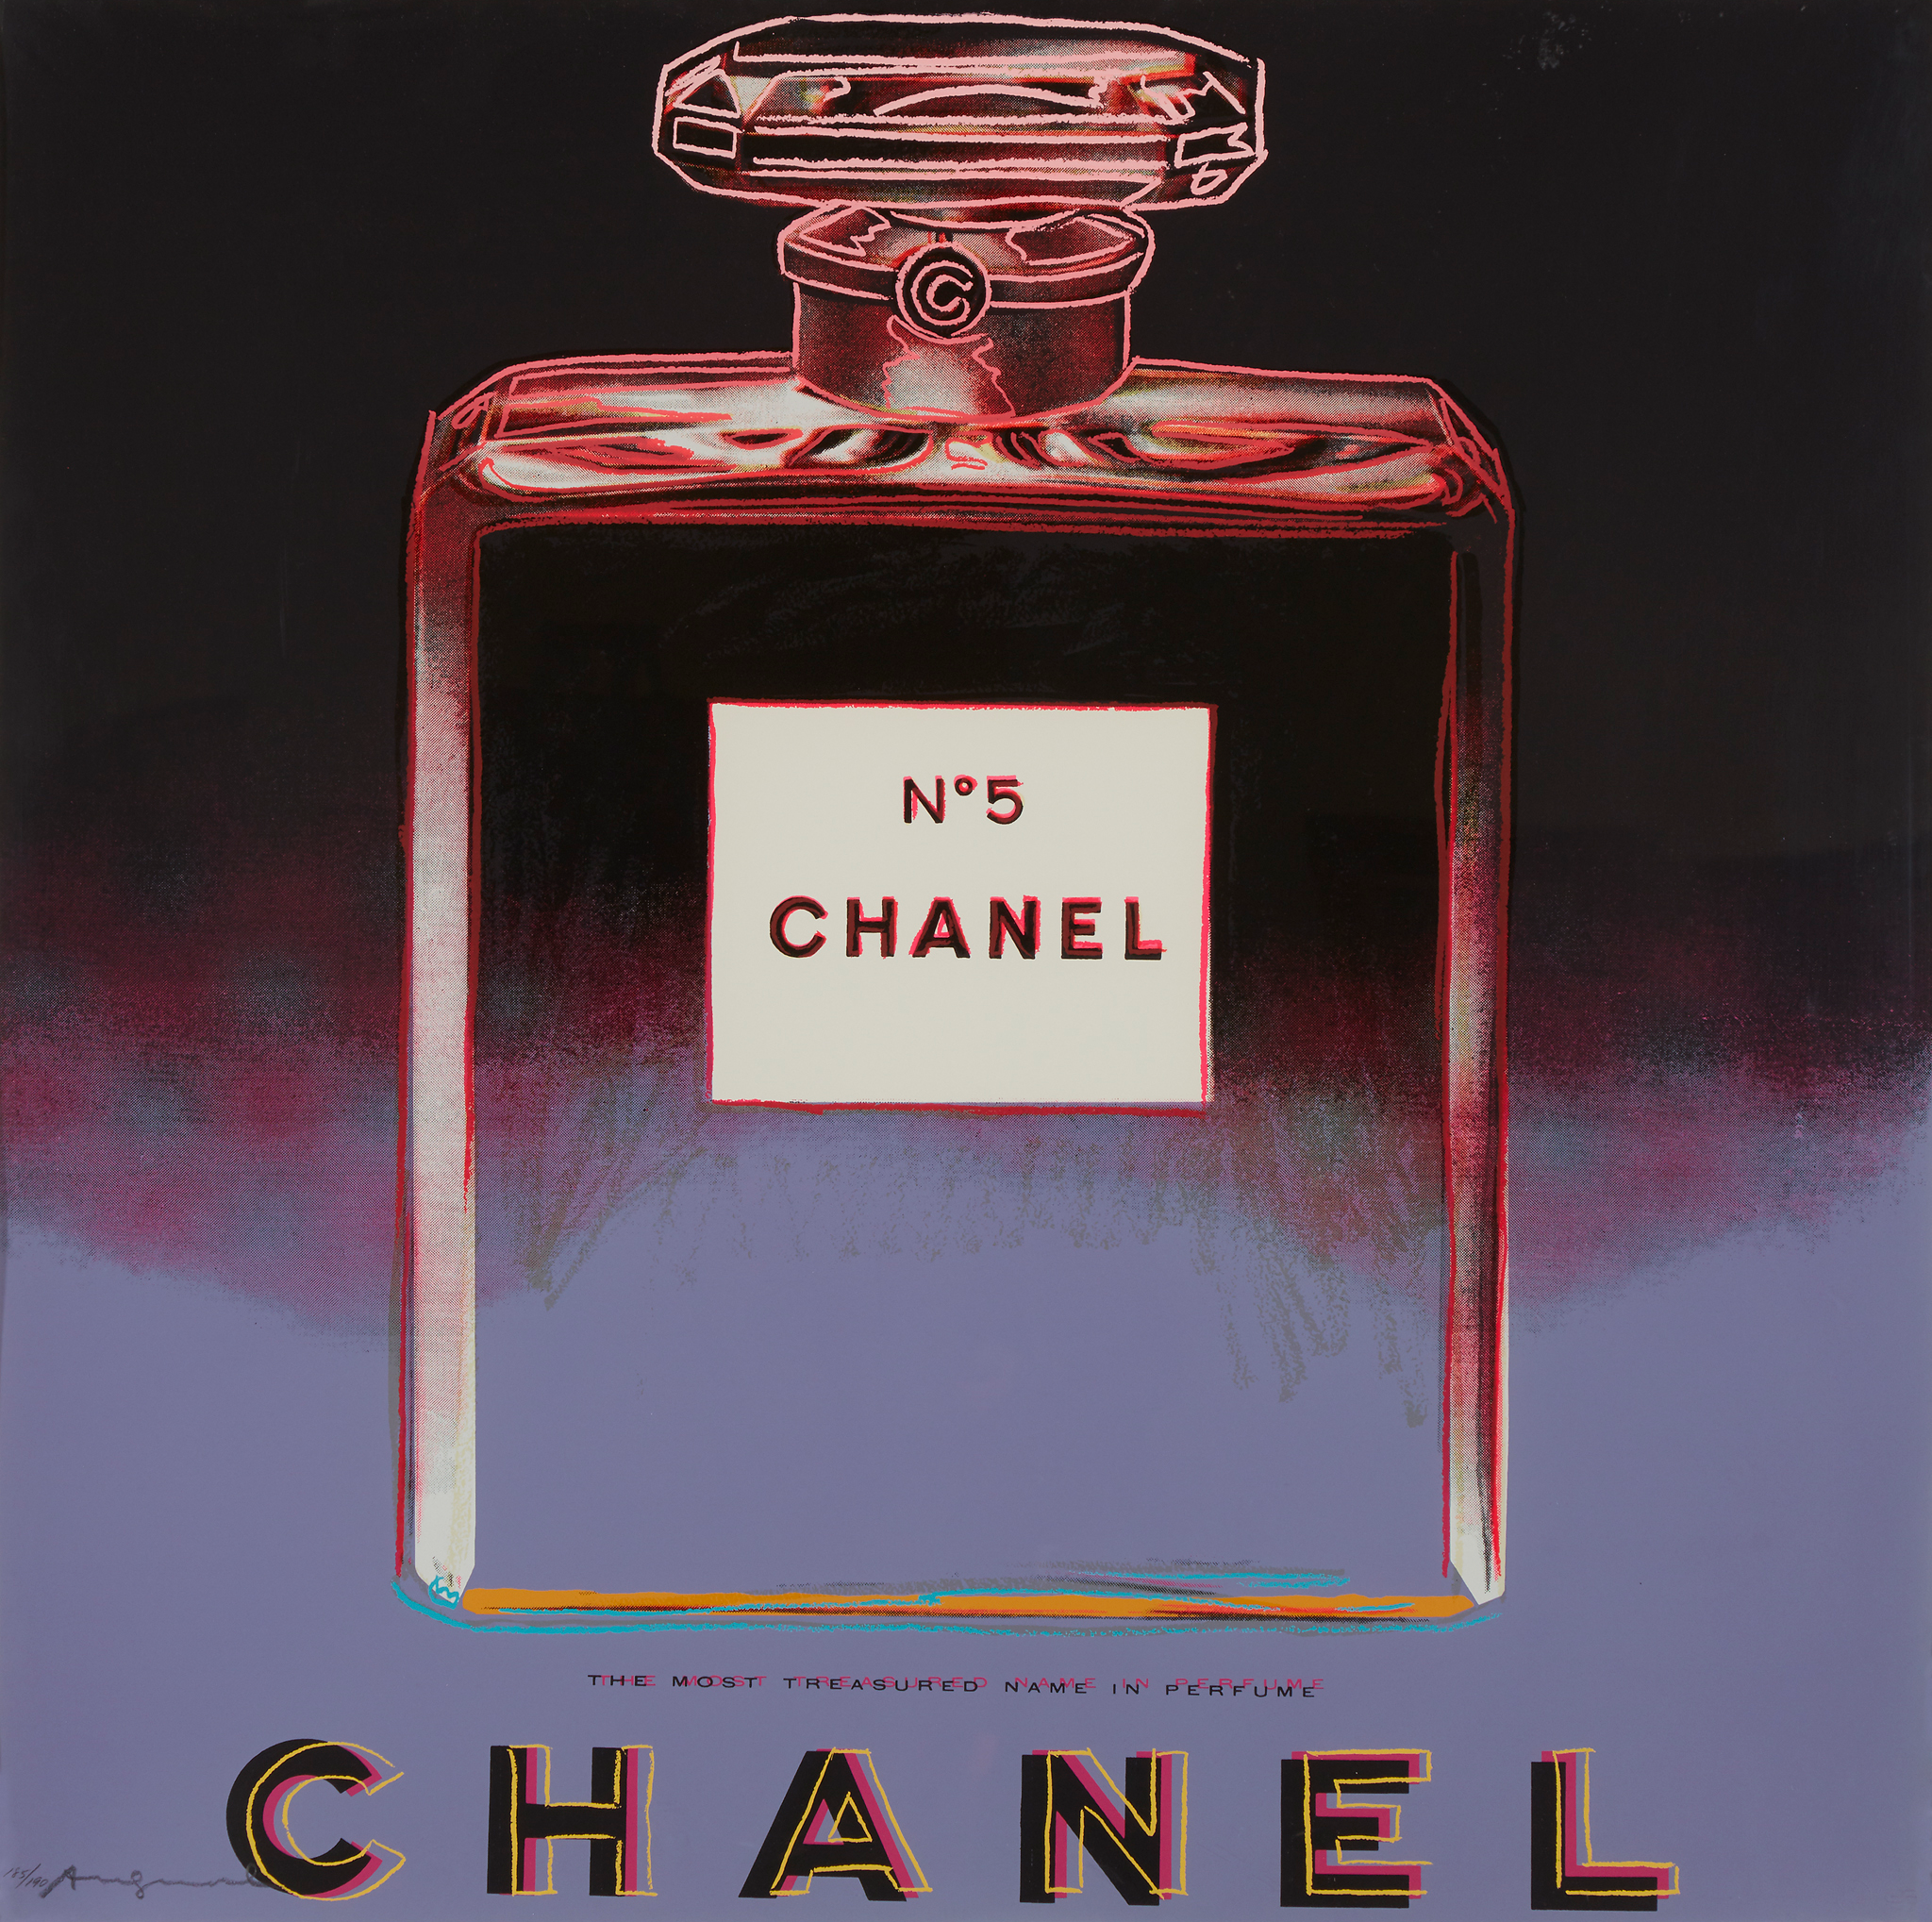 The Scent of All Paradoxes: Andy Warhol's Chanel